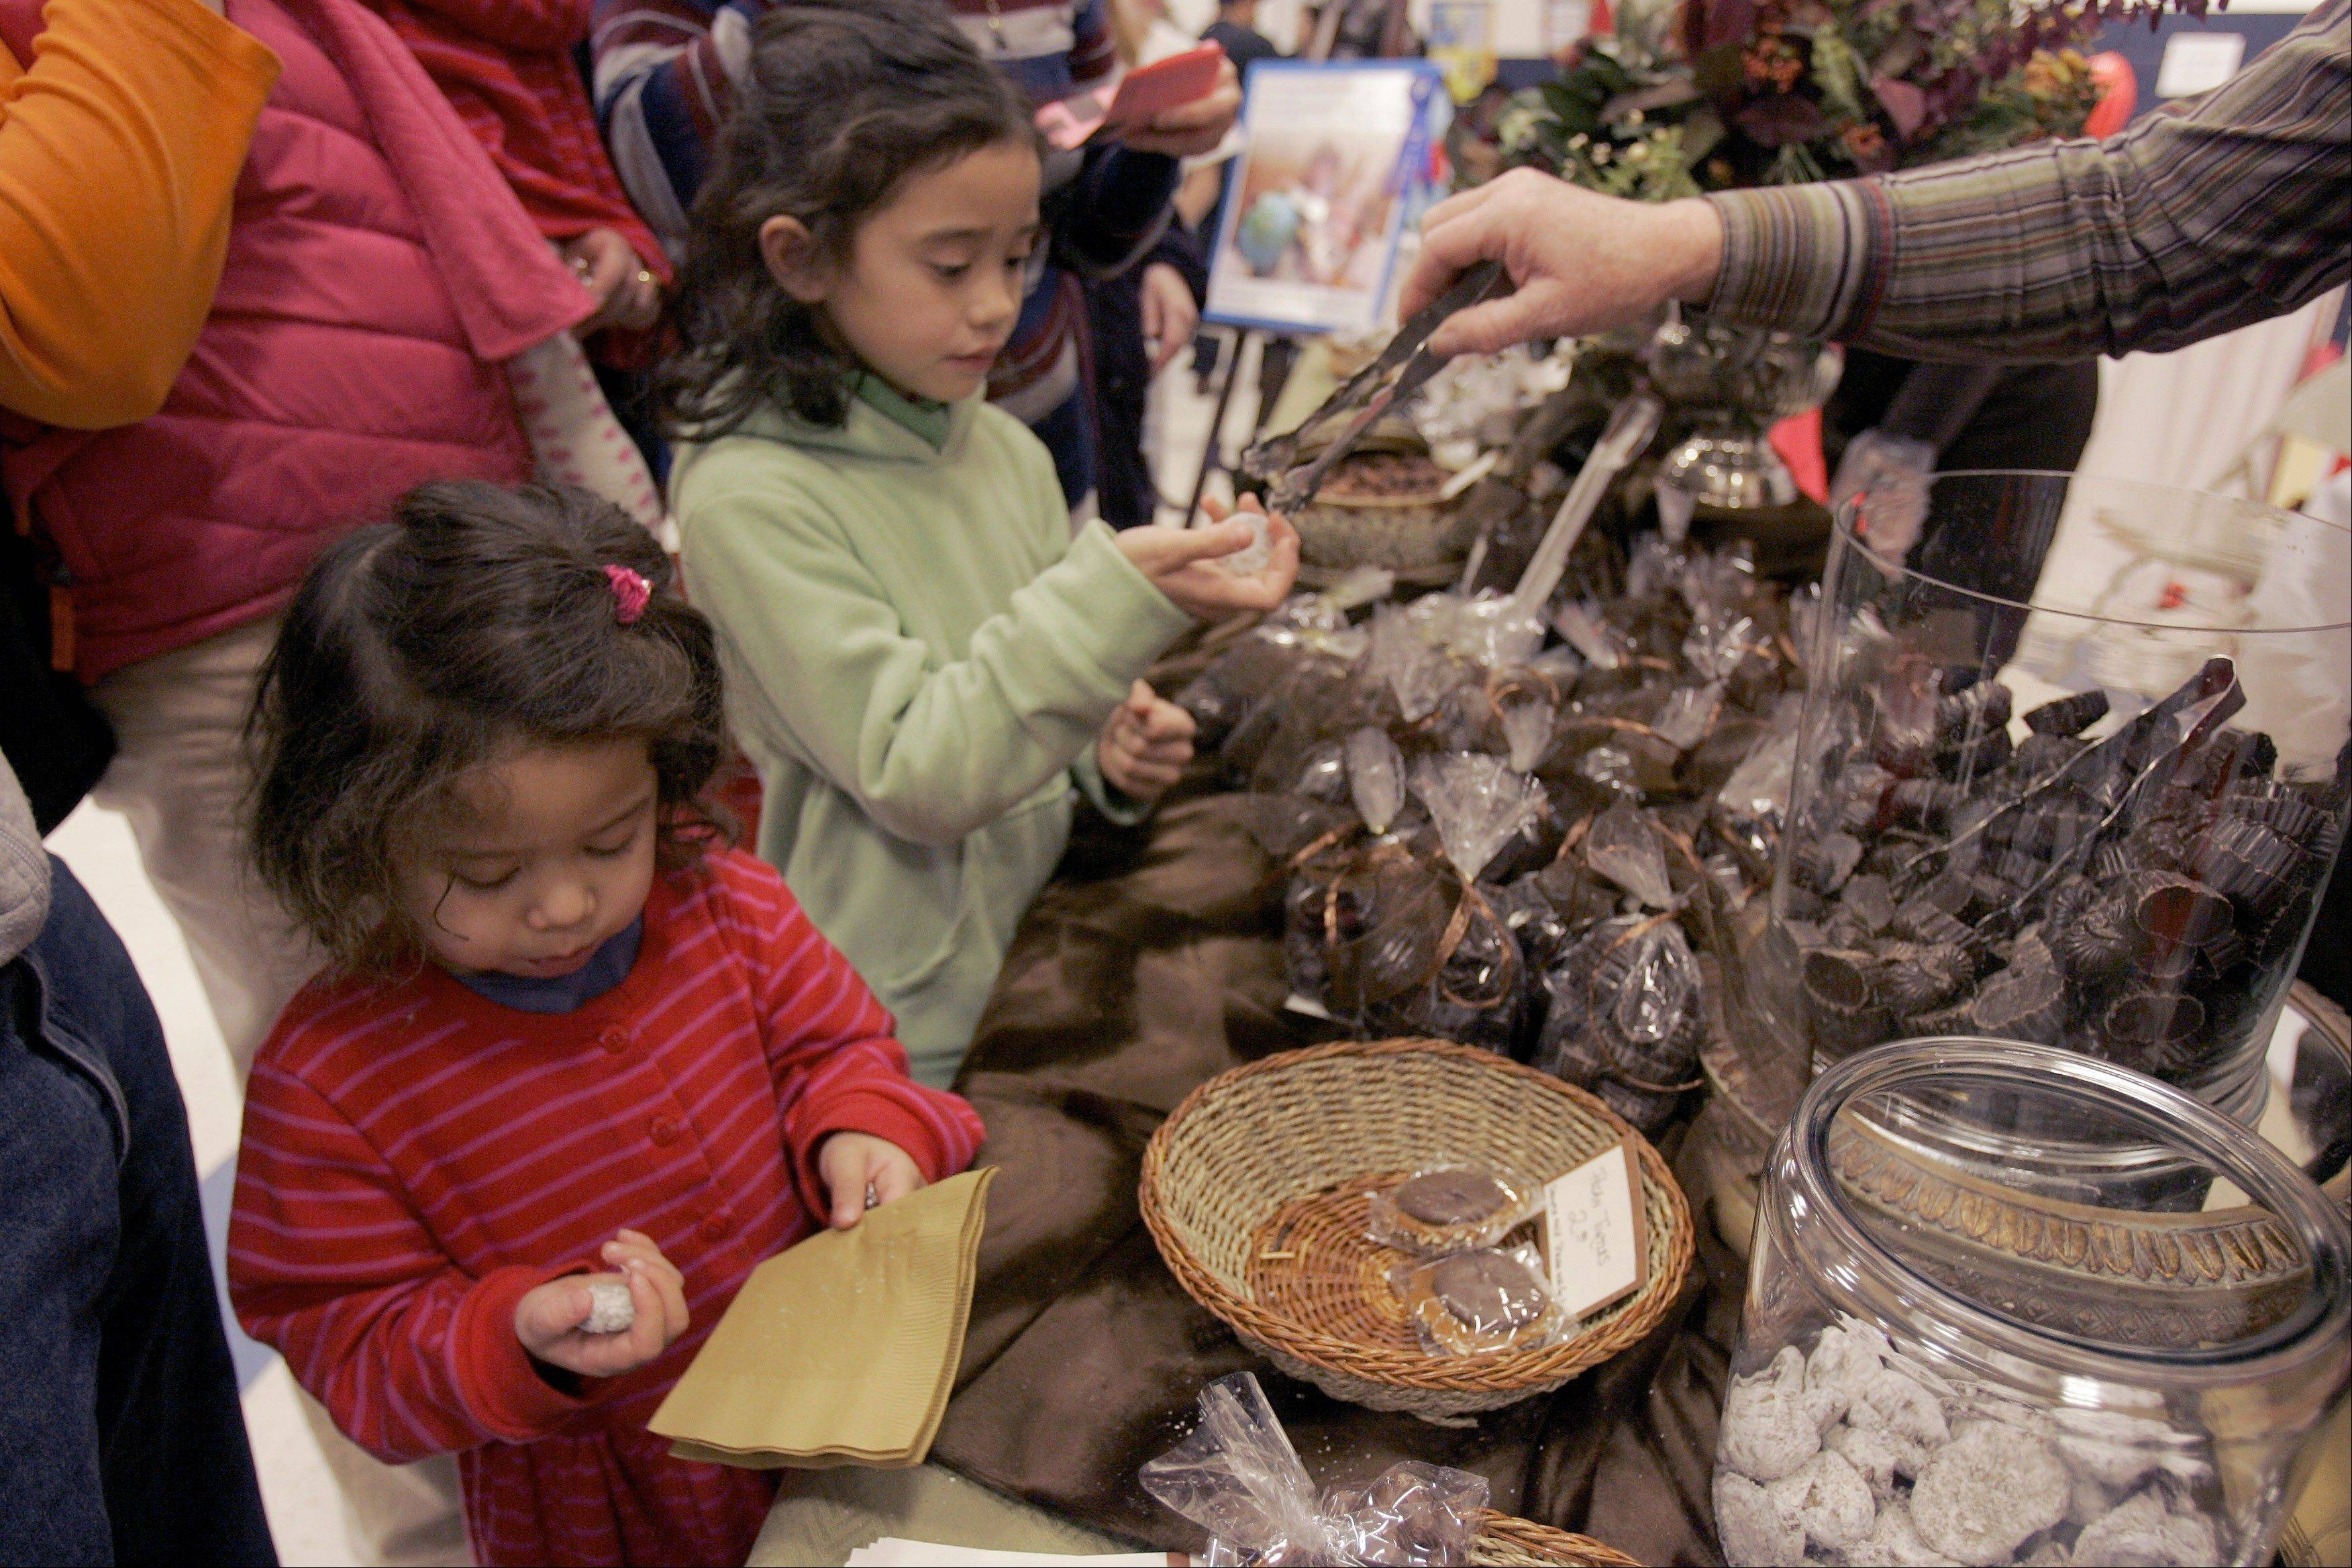 The ninth annual Chocolate Festival returns Saturday to the Neuqua Valley High School Freshman Center in Naperville.